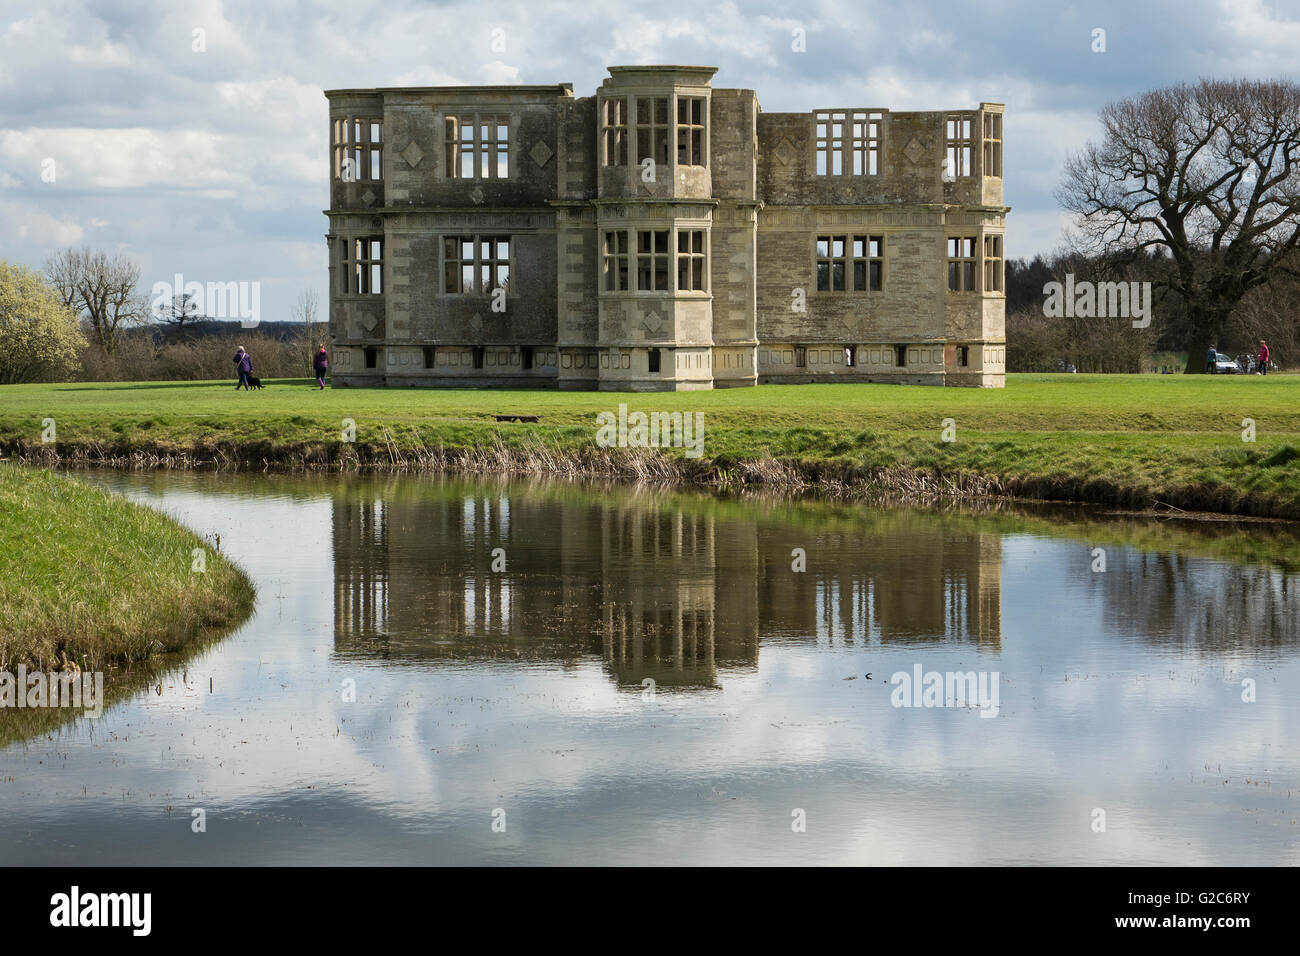 England, Northamptonshire, Oundle, Lyveden house - Stock Image